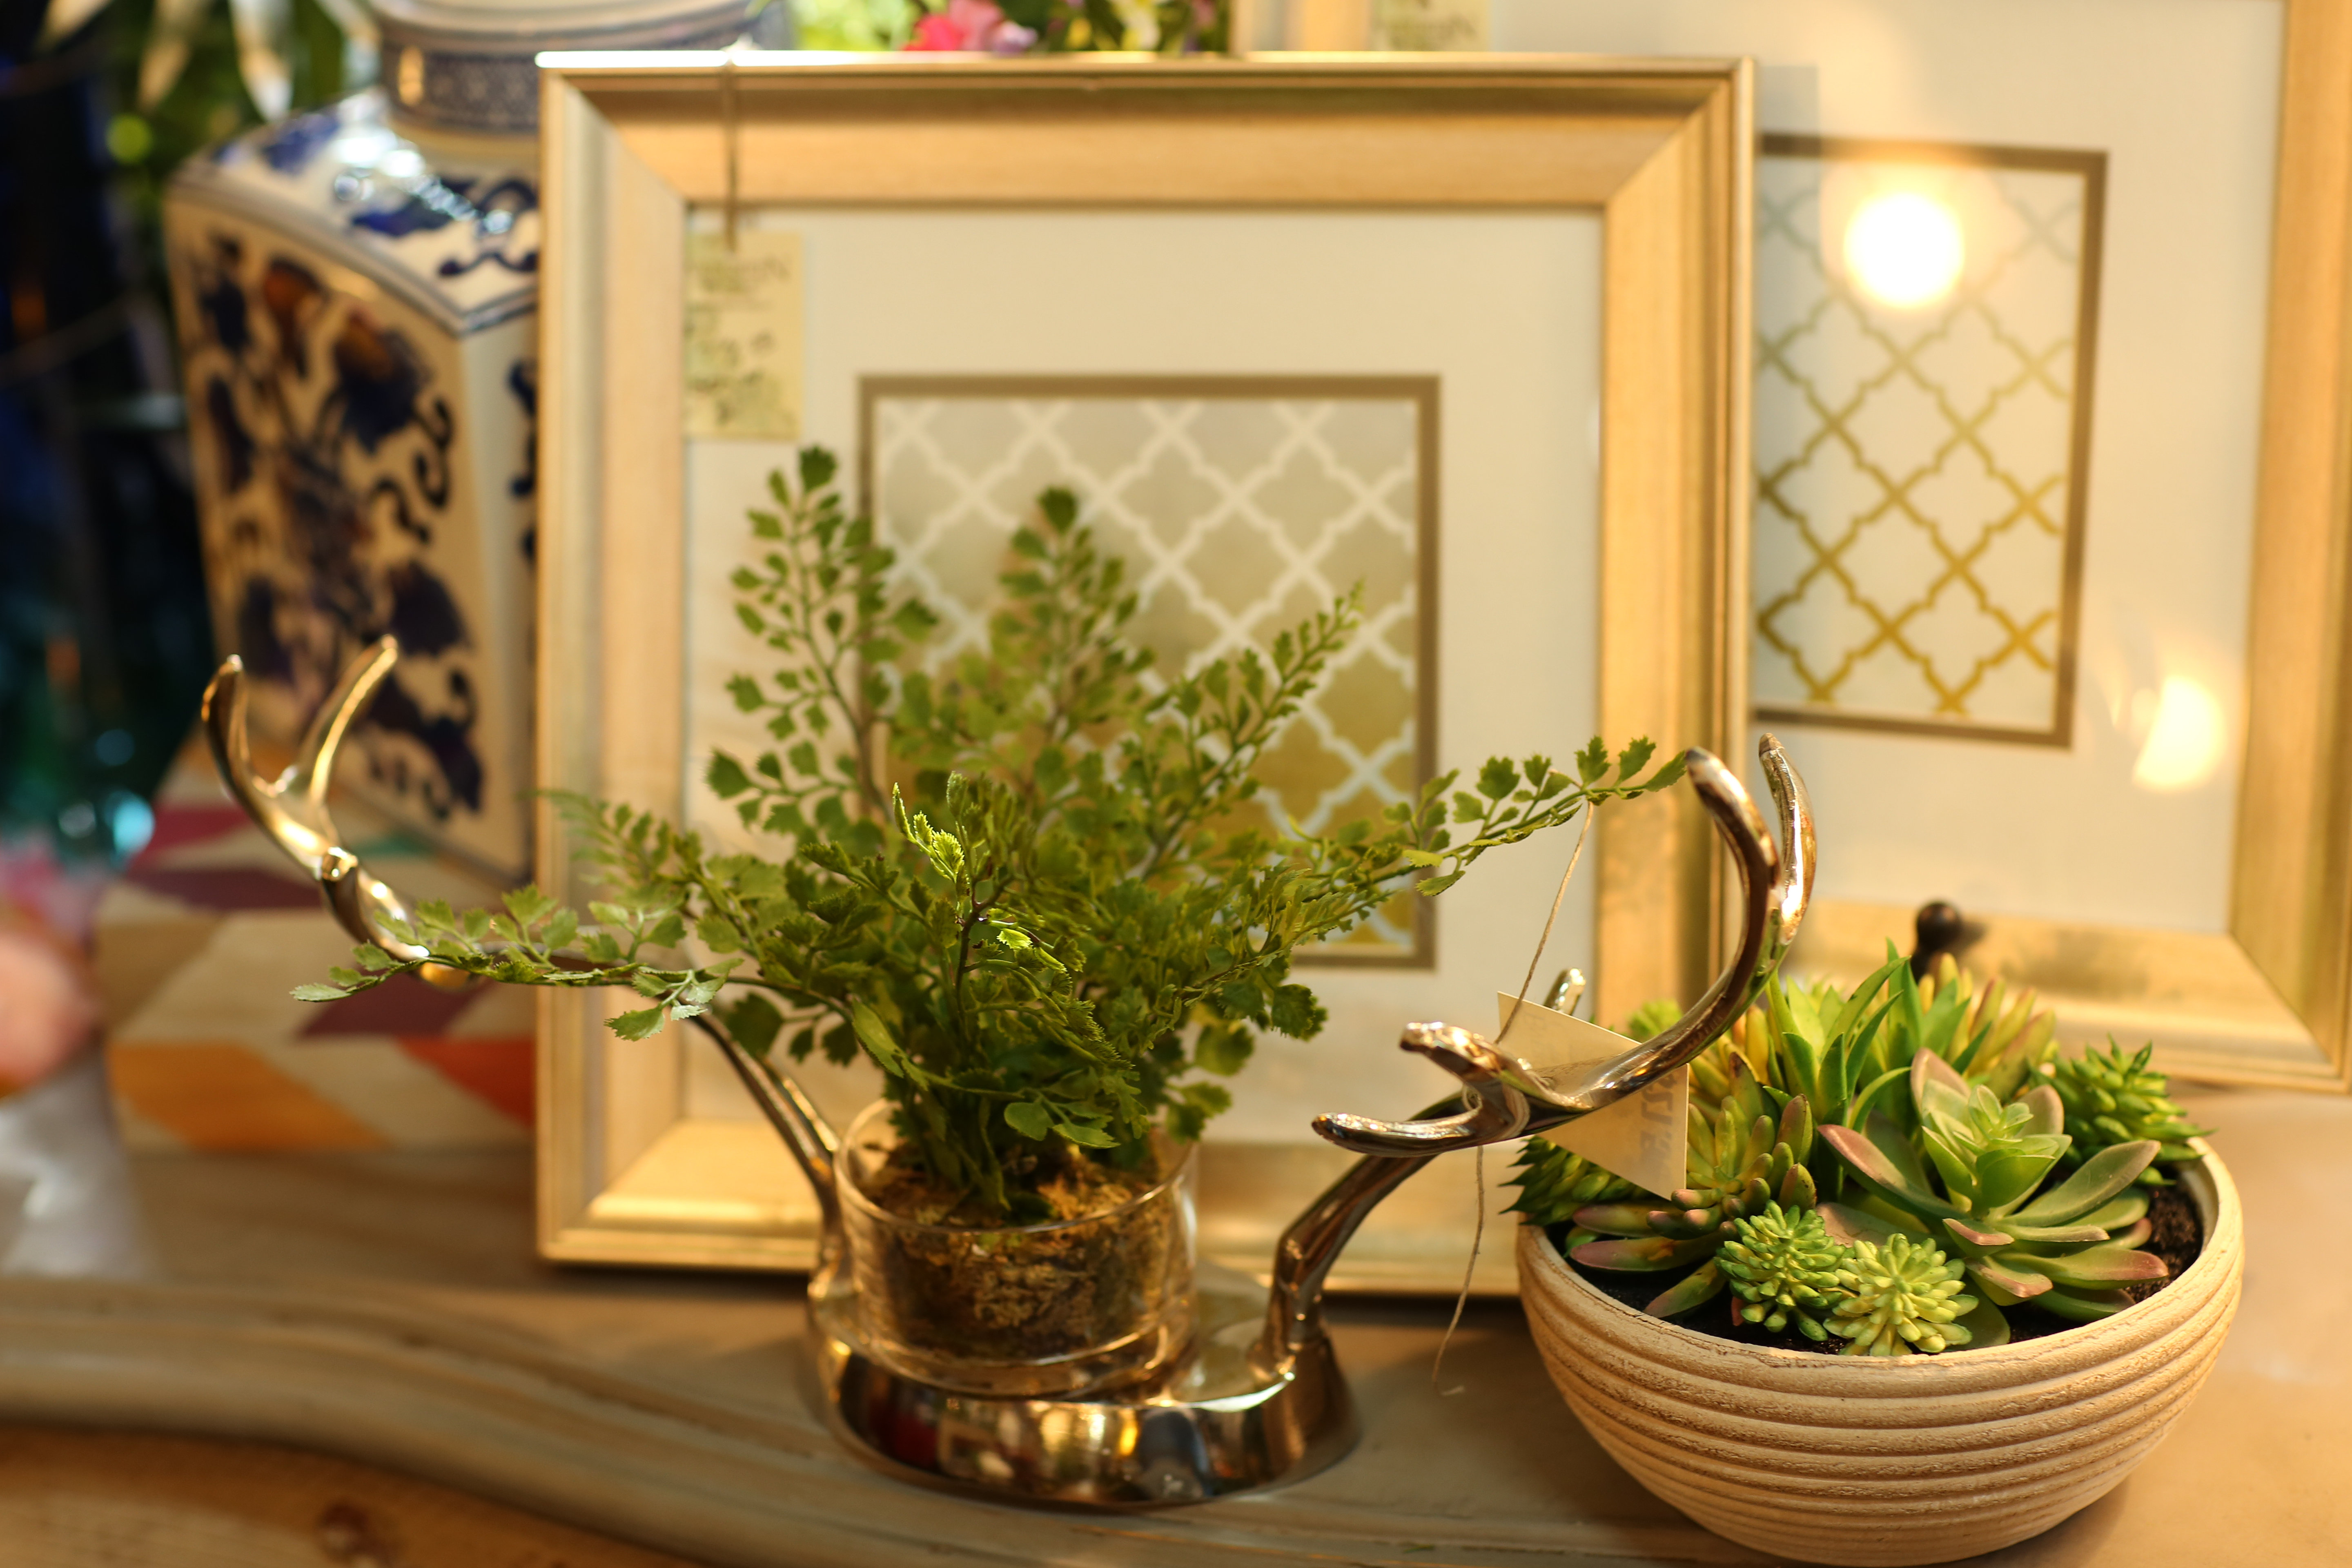 Affordable home decor stores home accessory stores for Affordable home decor online